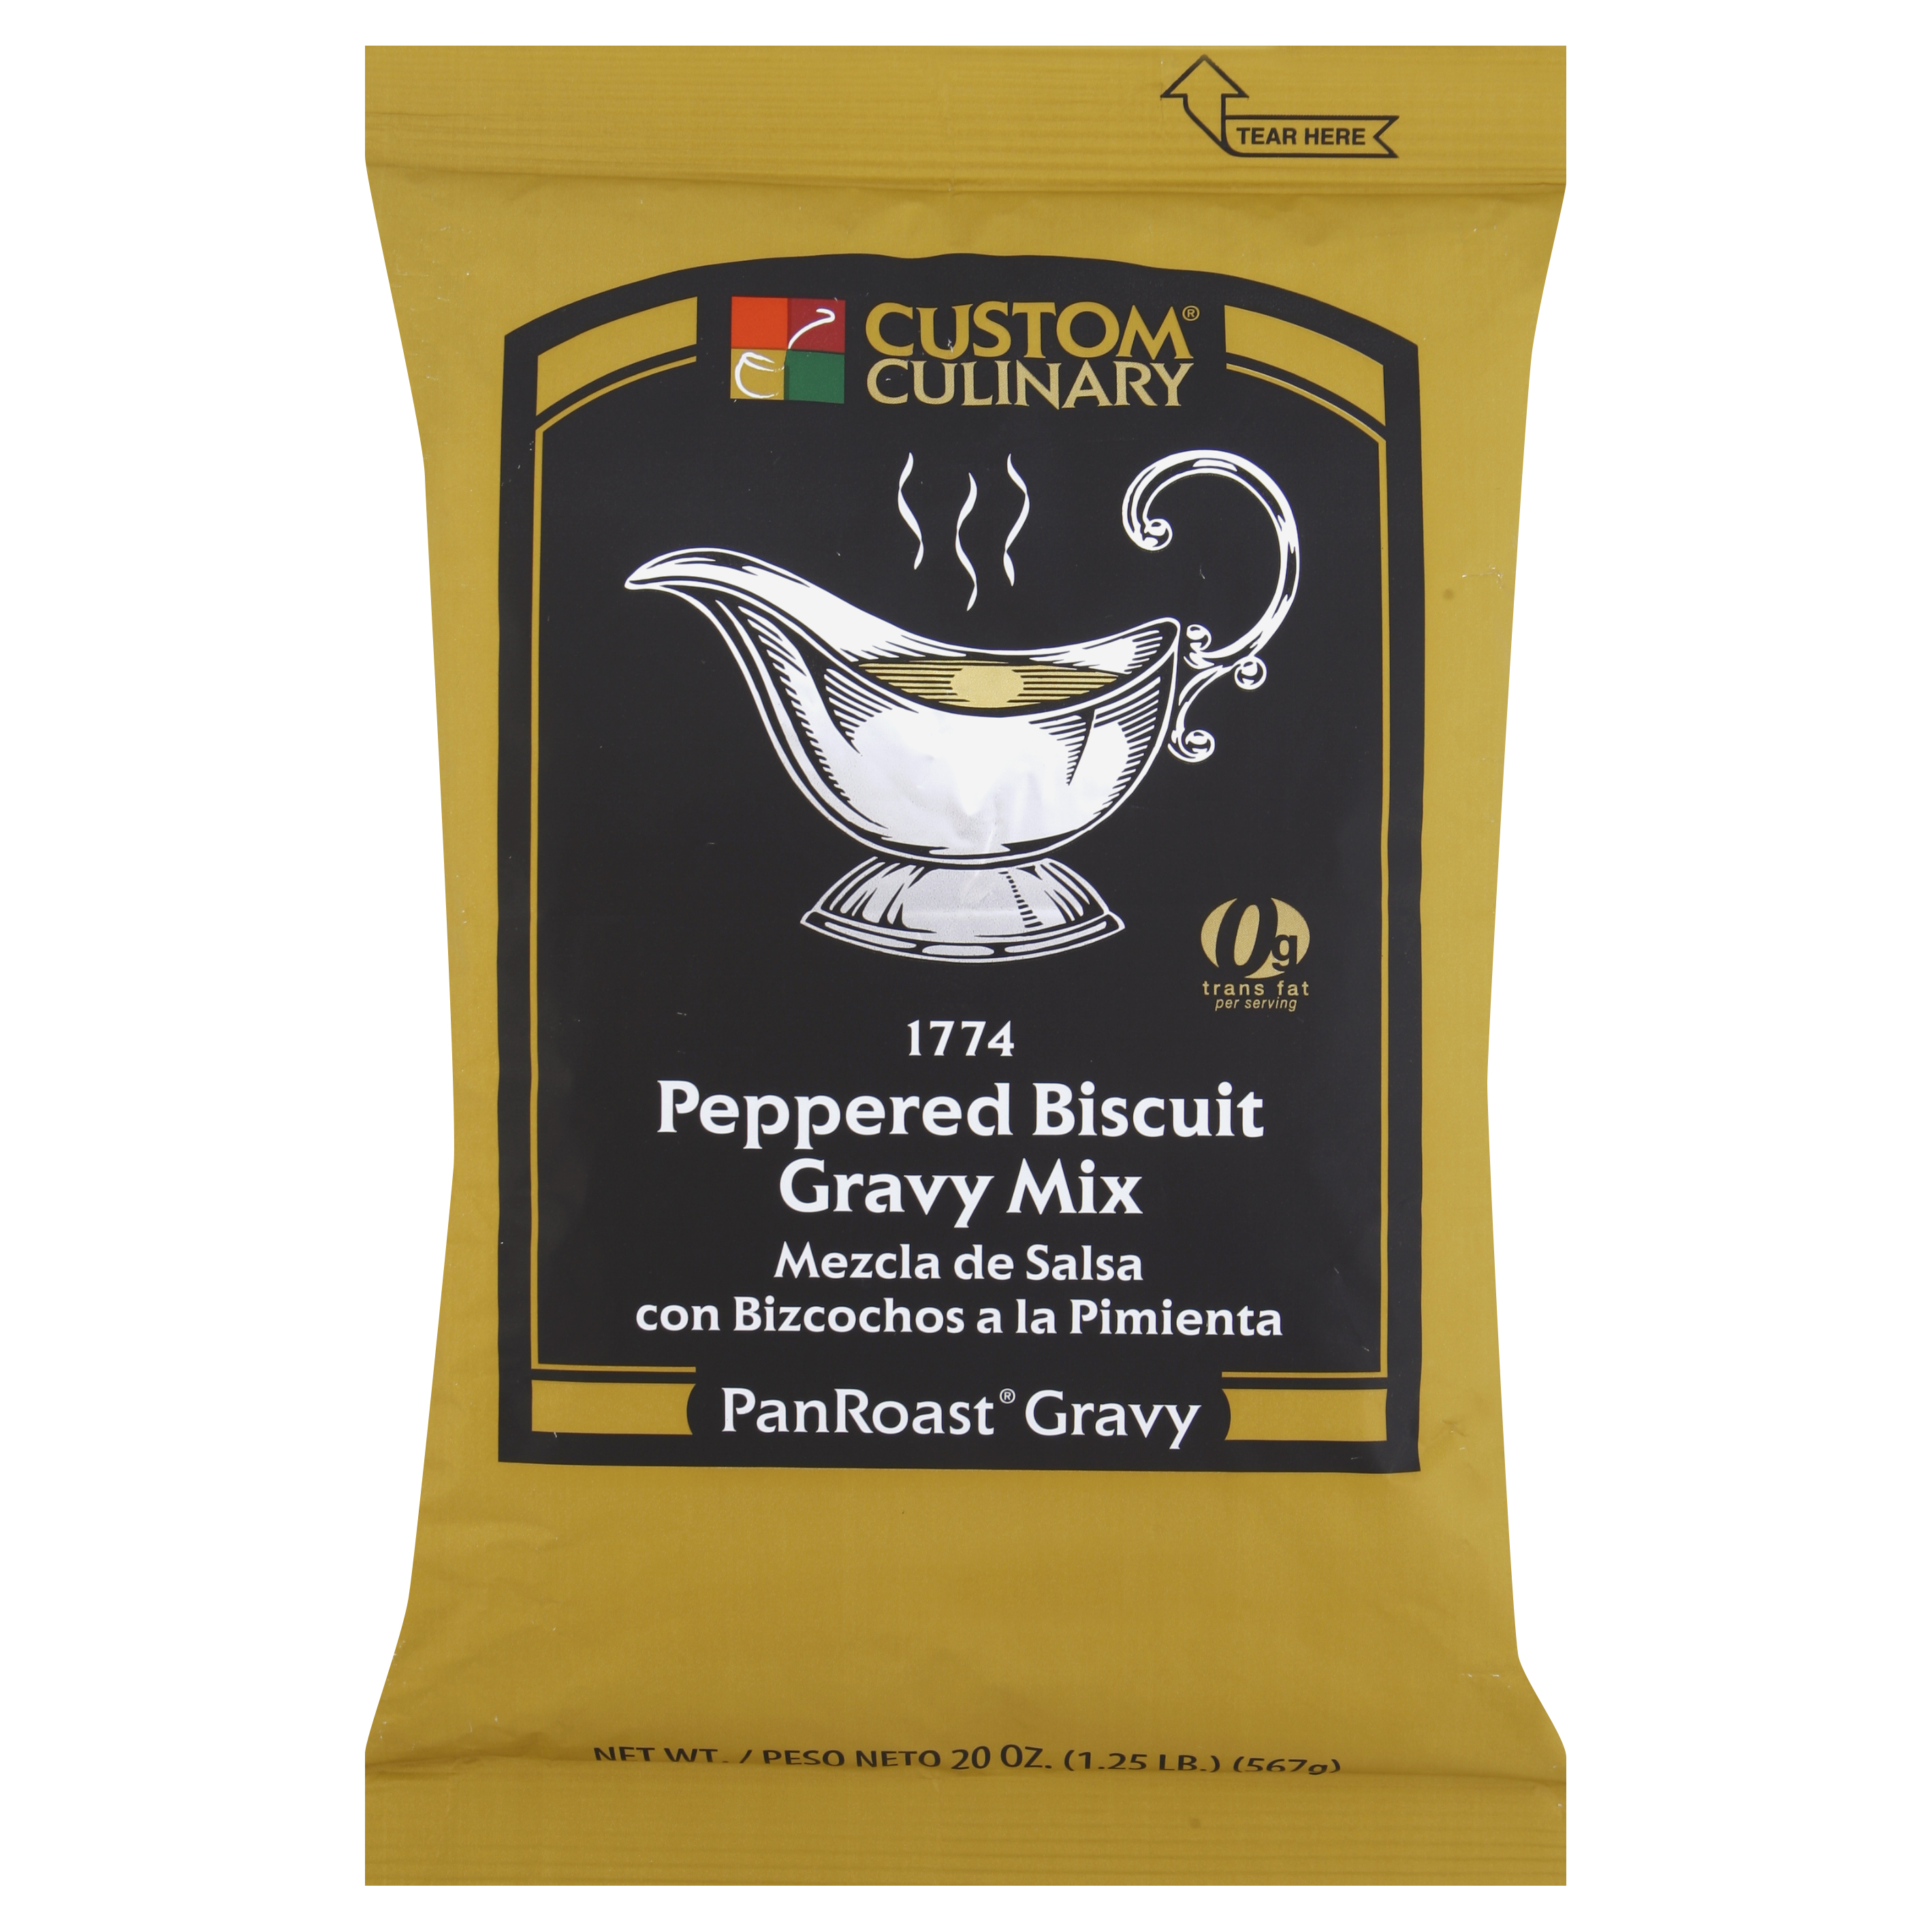 1774 - PanRoast Peppered Biscuit Gravy Mix